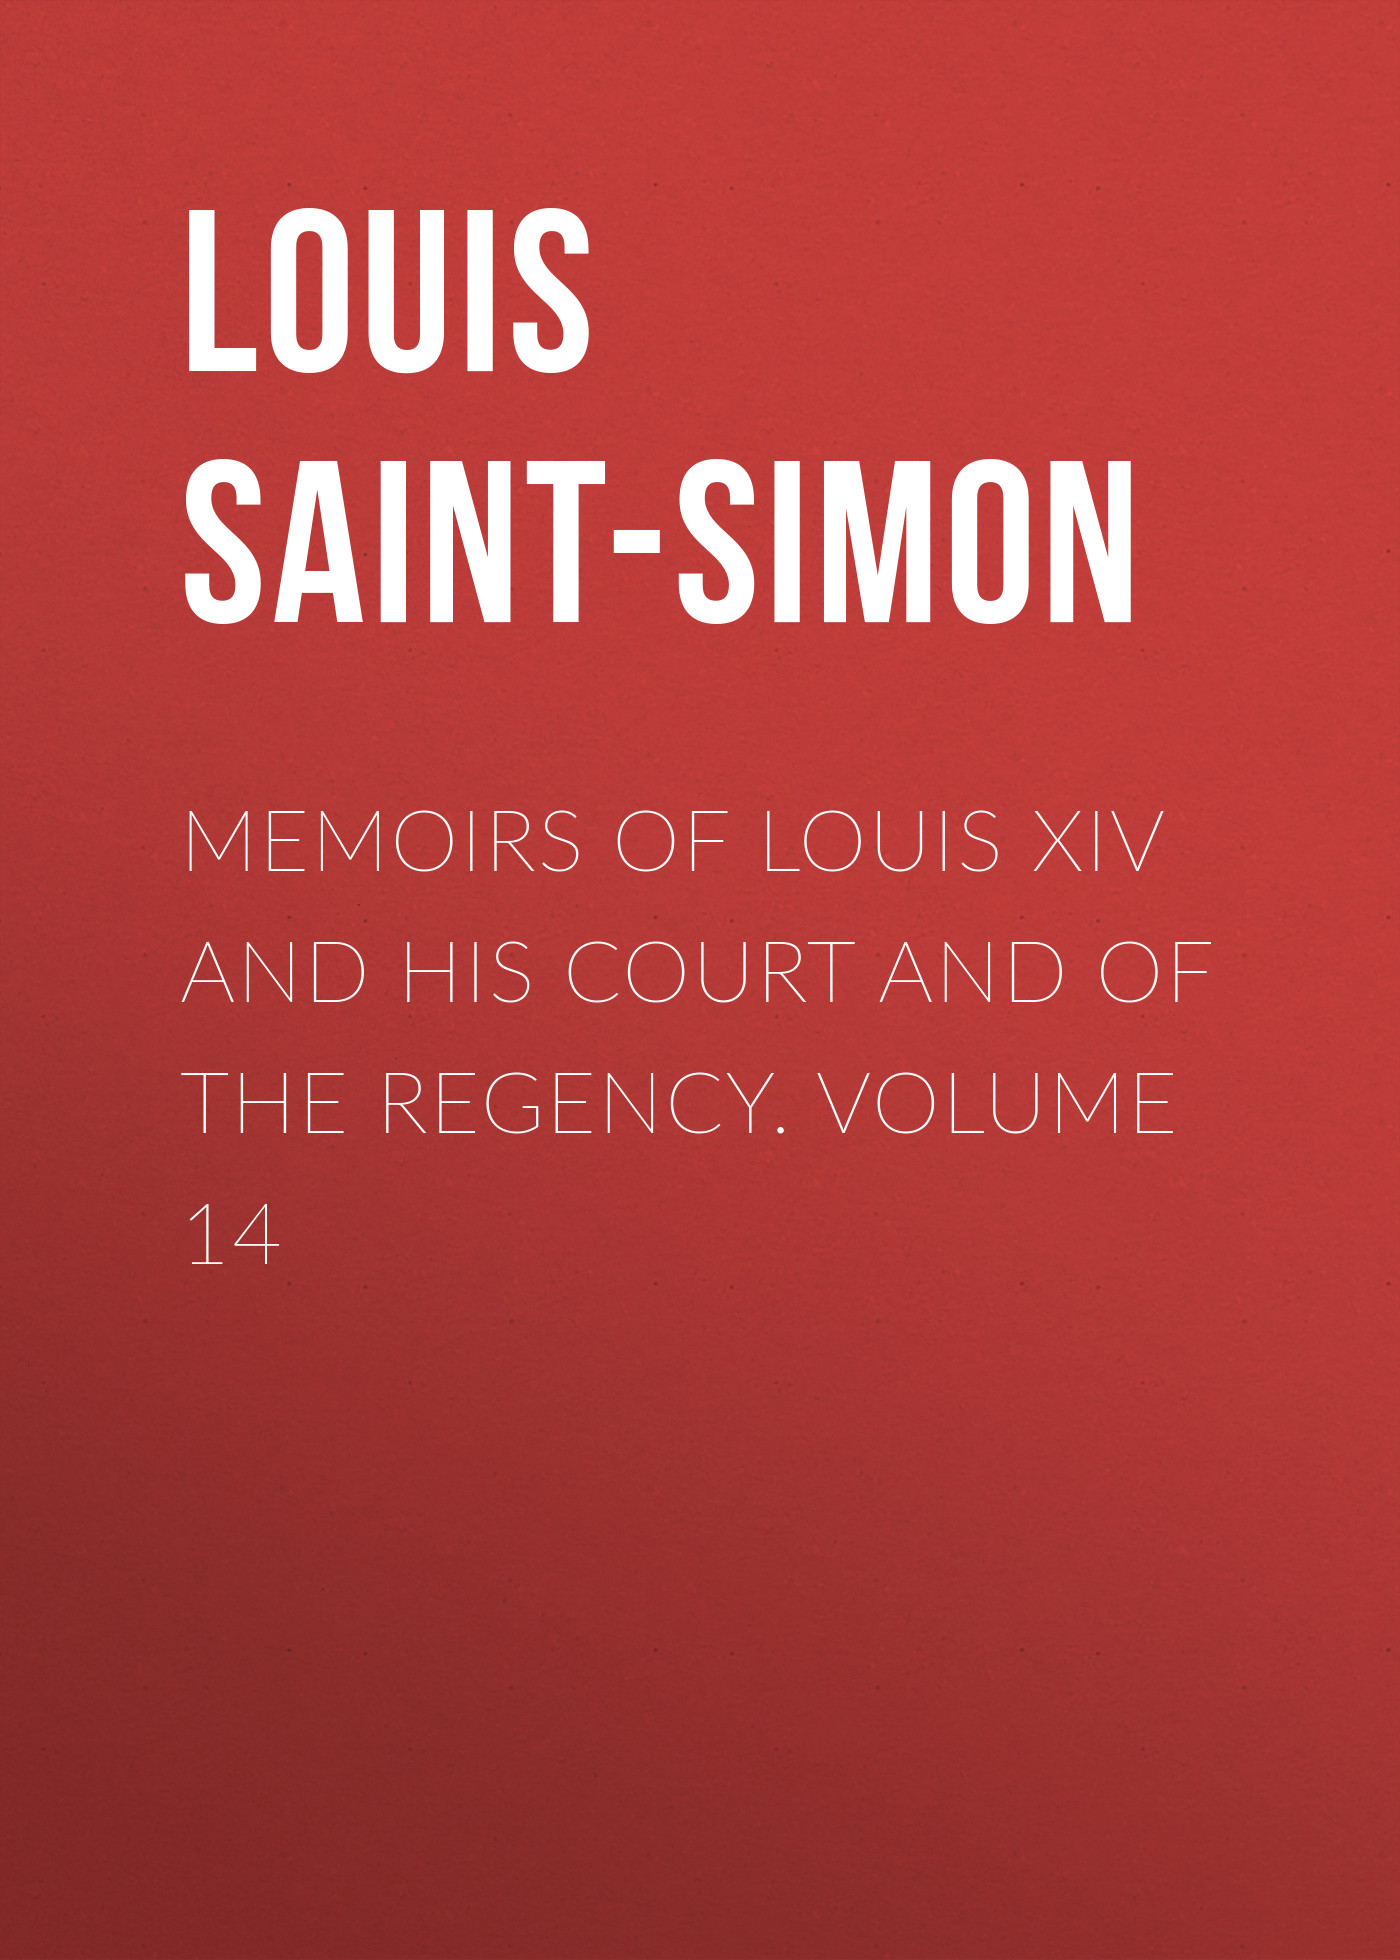 Фото - Louis Saint-Simon Memoirs of Louis XIV and His Court and of the Regency. Volume 14 jules marcou life letters and works of louis agassiz volume i